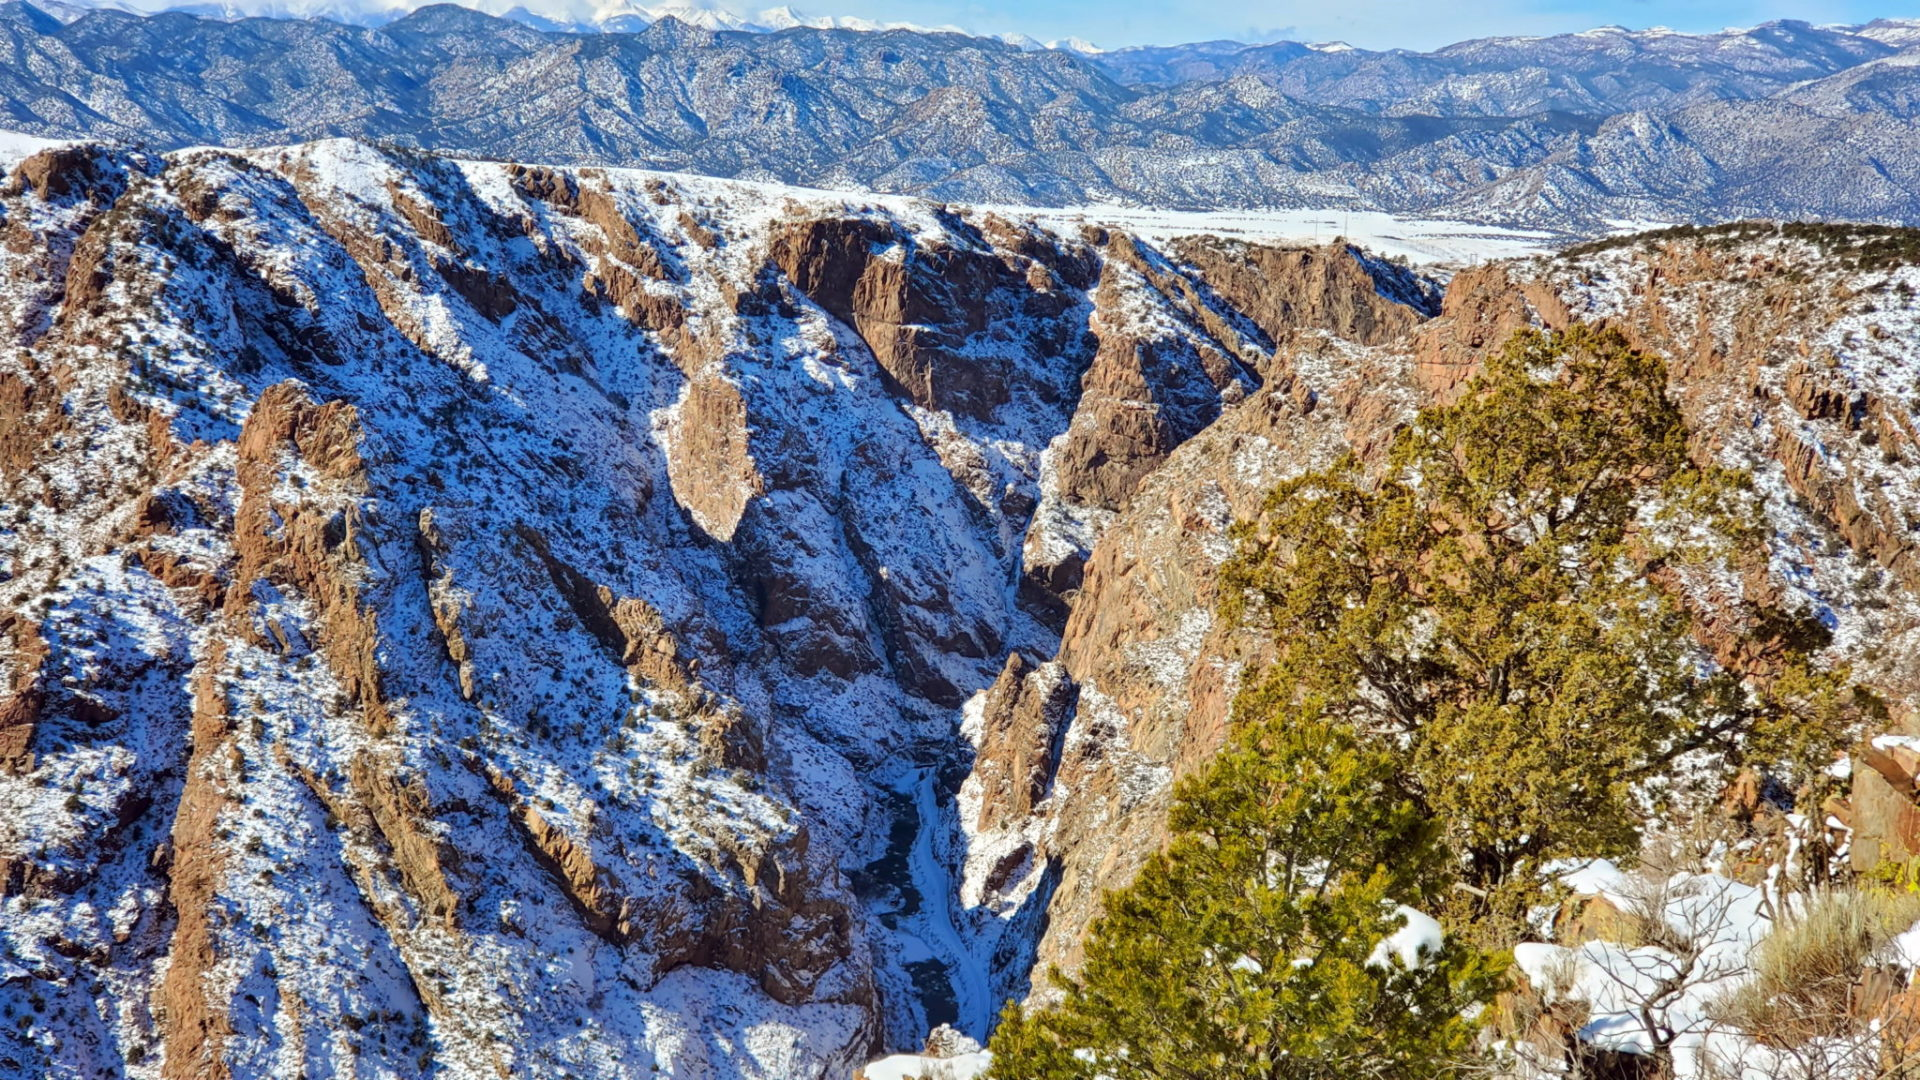 A view into the Royal Gorge from the trail